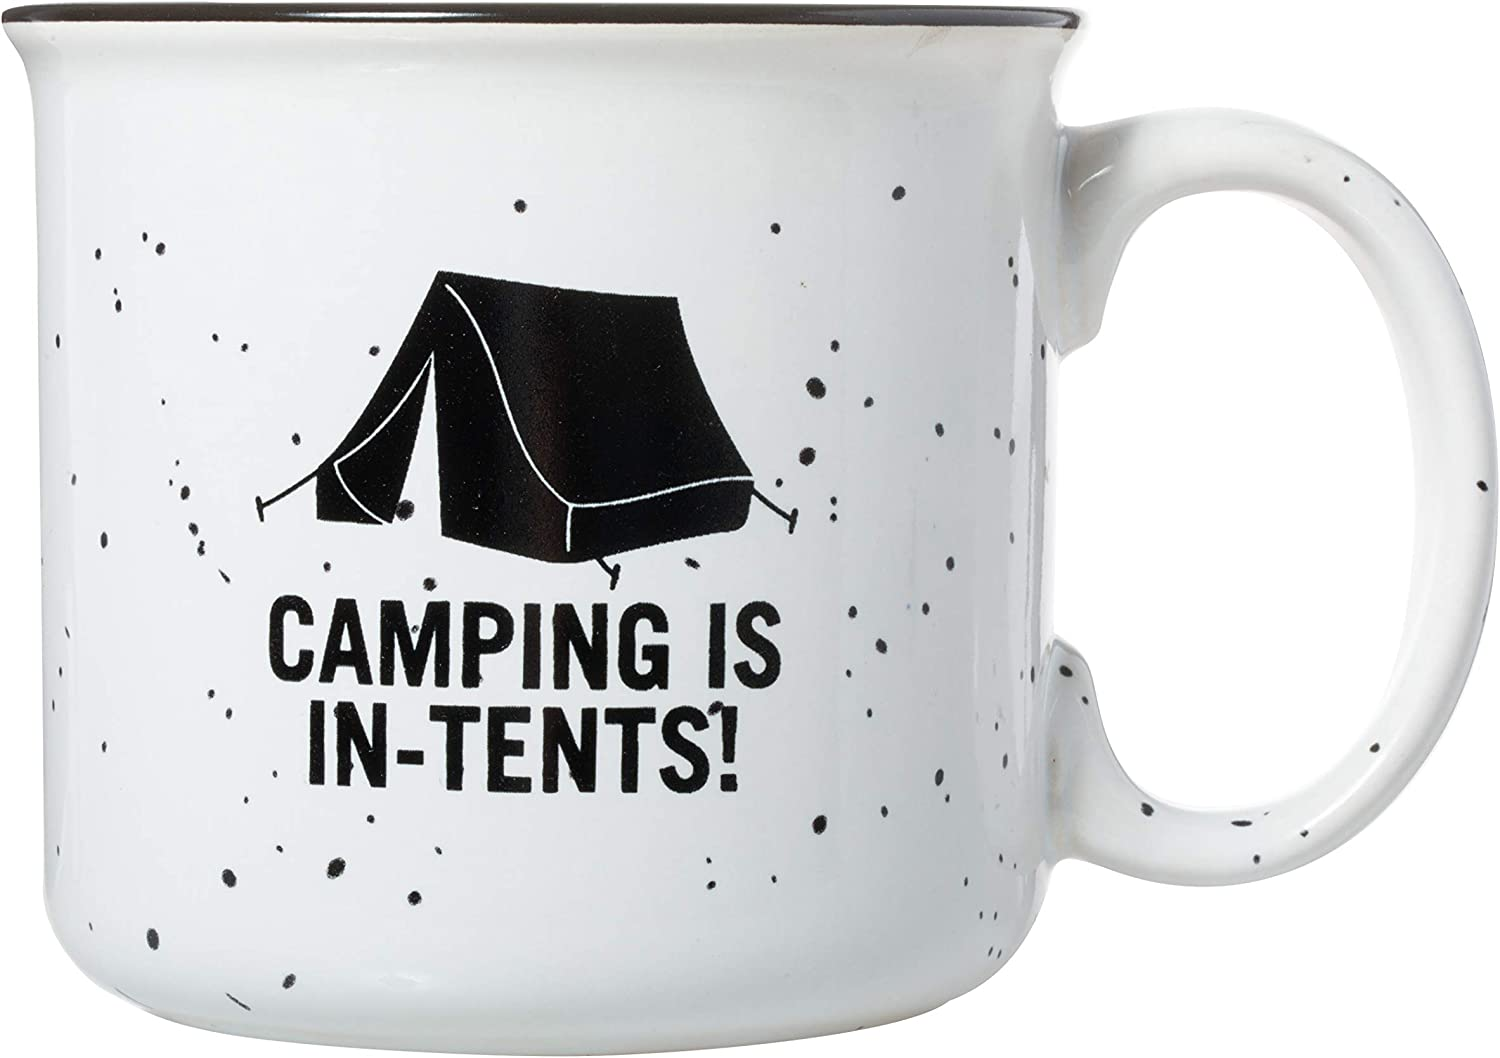 Camping Is In-Tents - Speckled Ceramic Campfire Mug - 15oz Deluxe Double-Sided Coffee Tea Mug